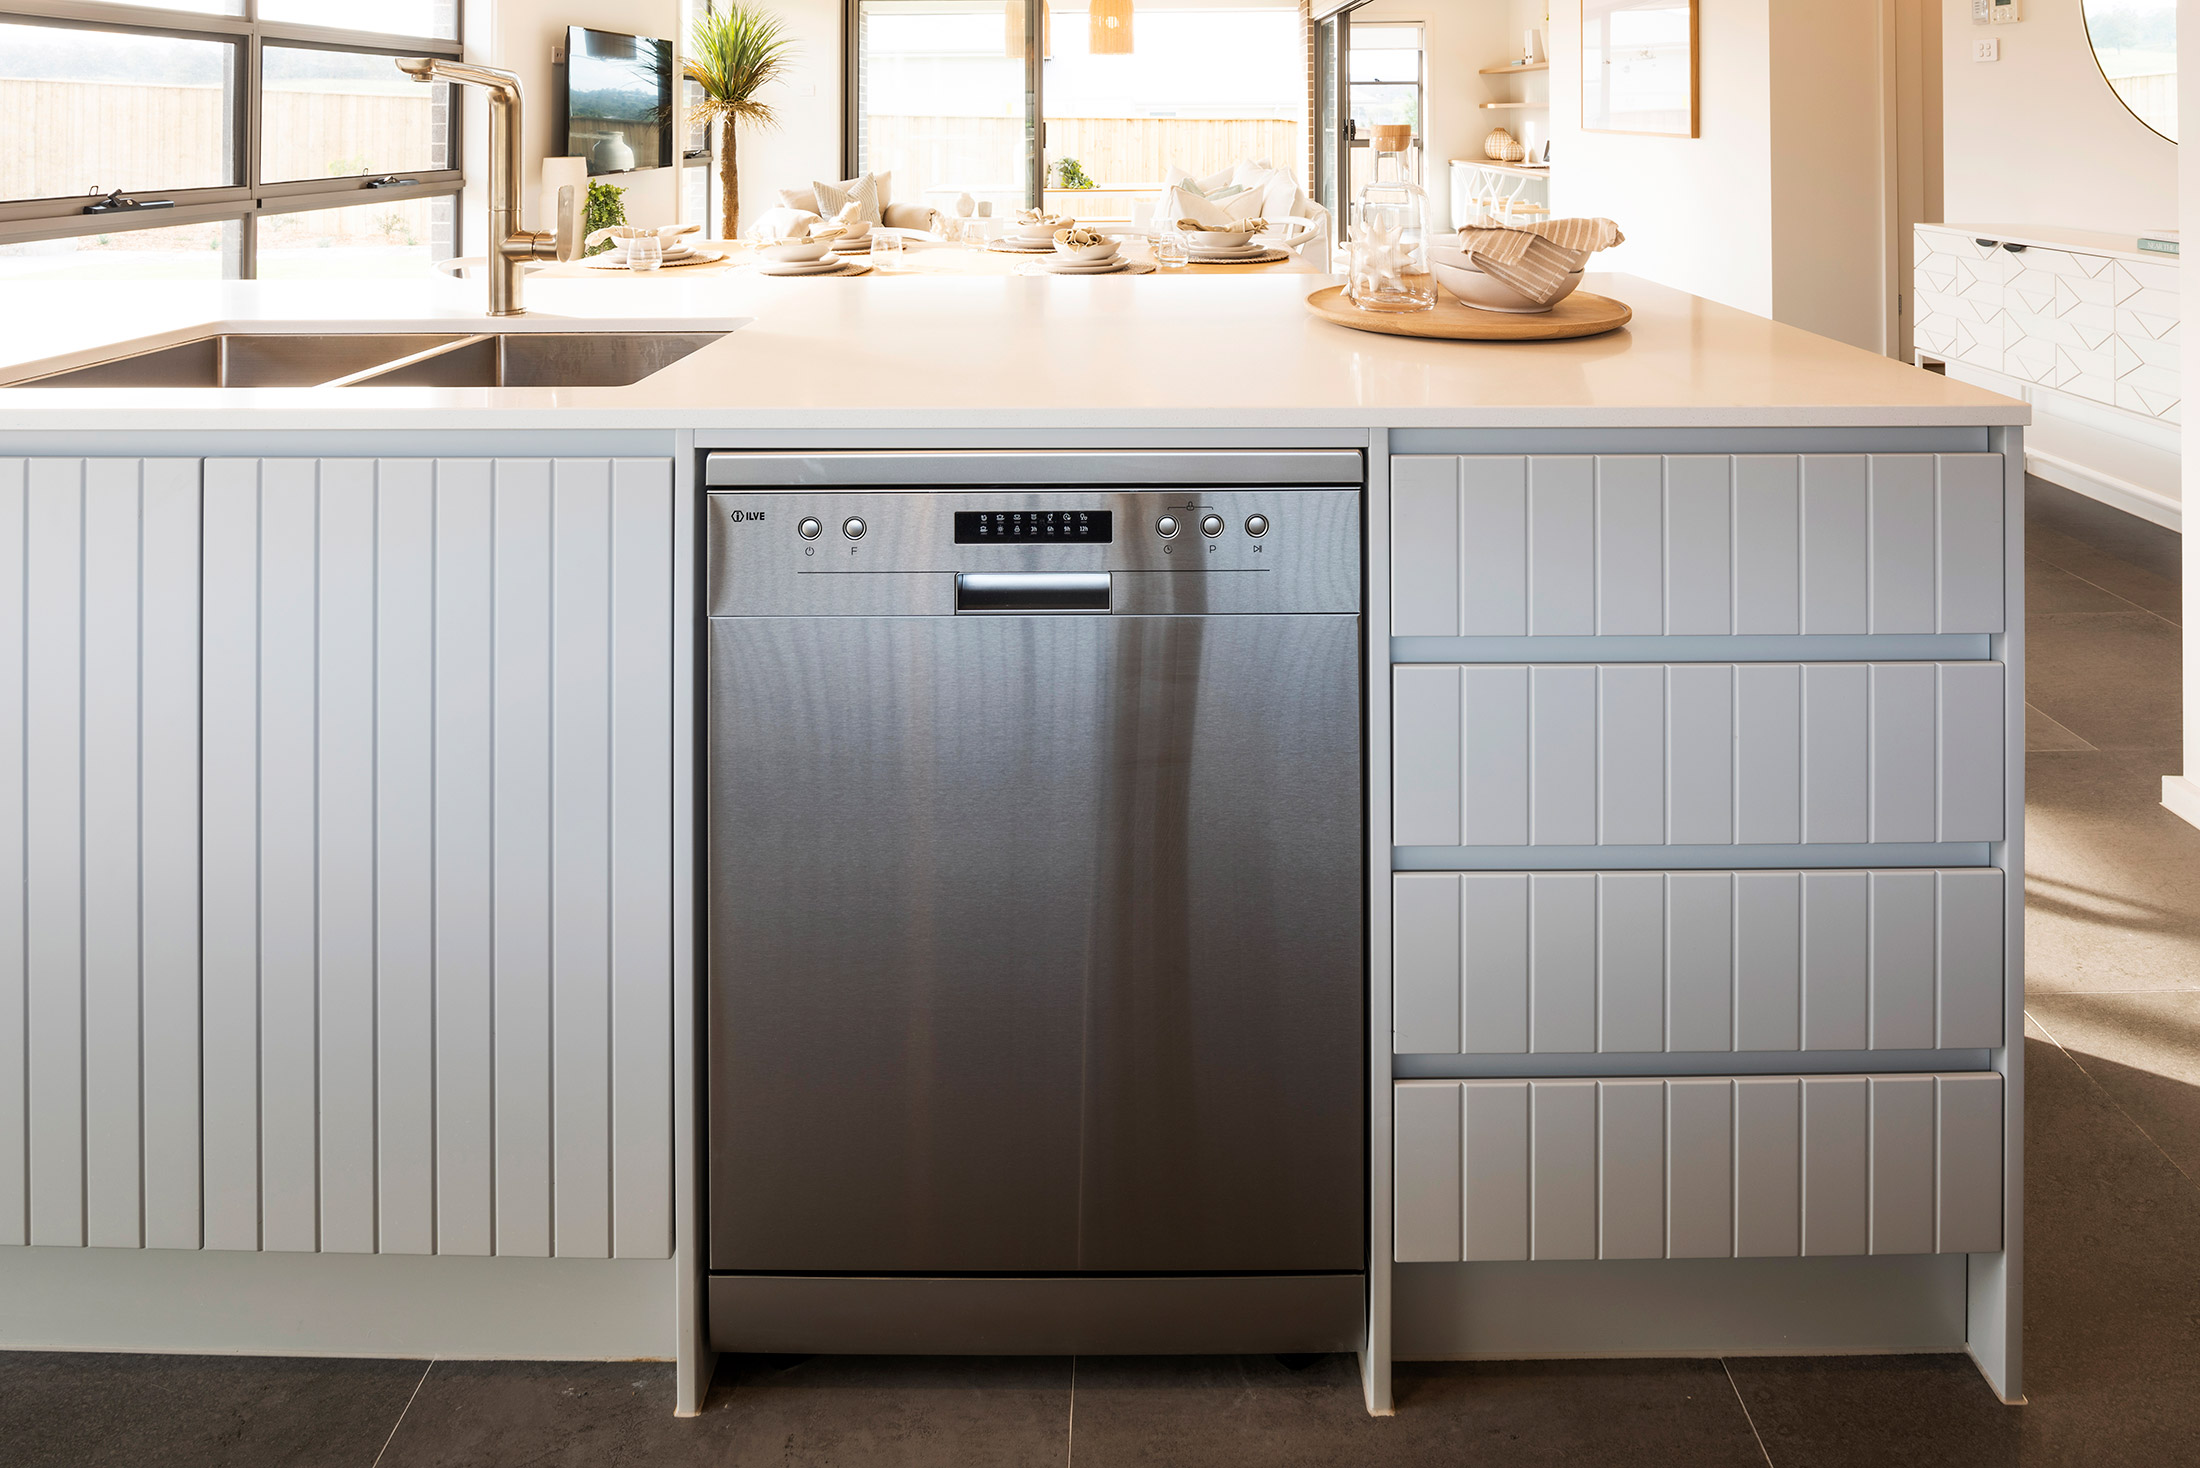 Built in dishwasher in white kitchen counters